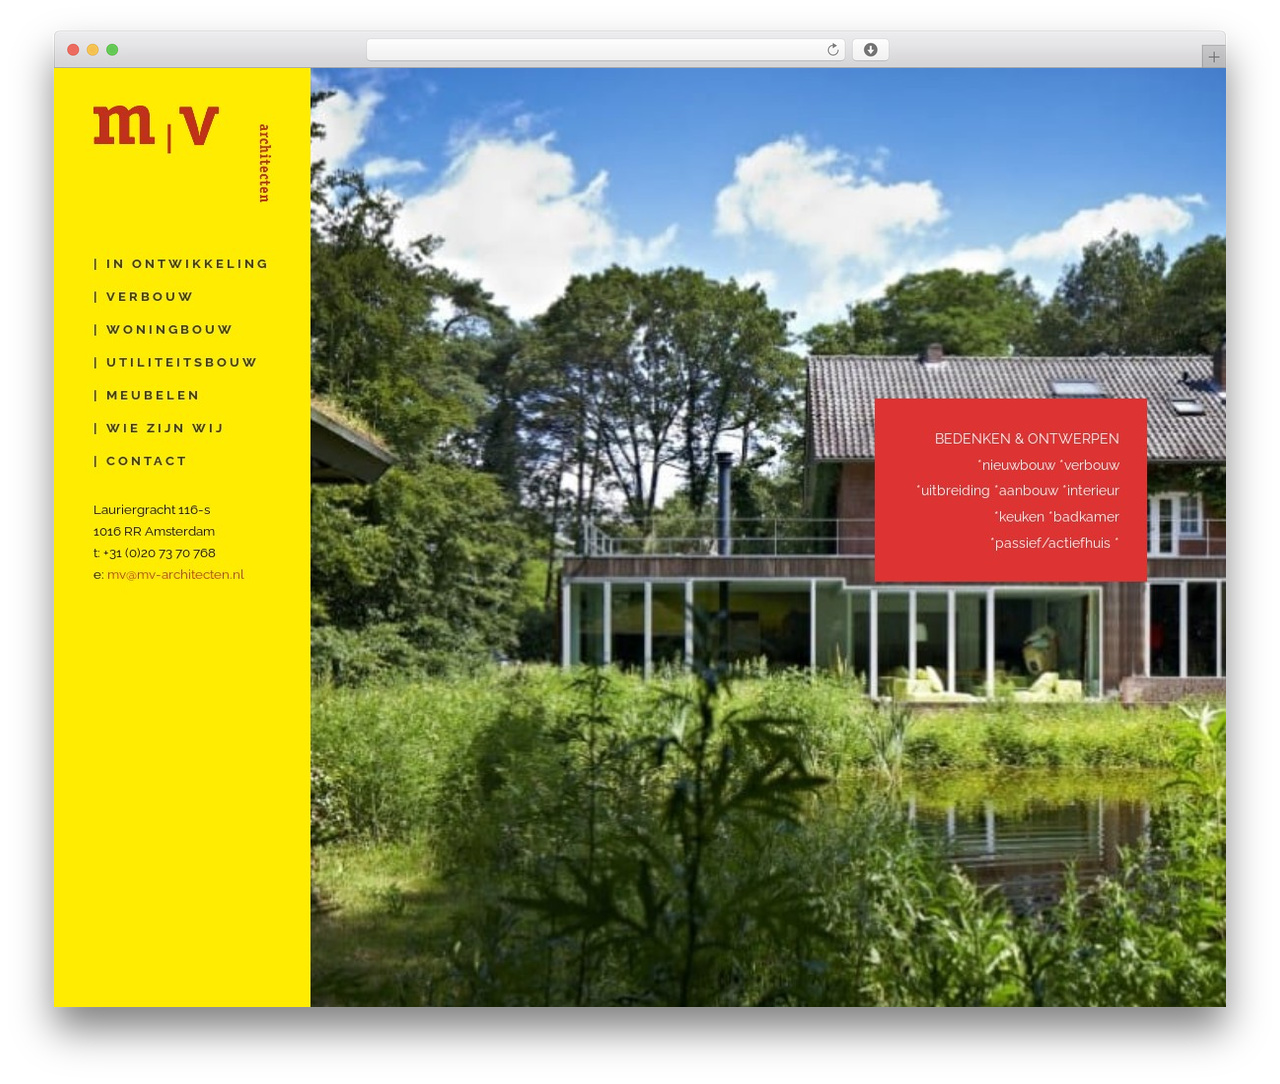 Keuken M/v Stockholm Best Wordpress Theme By Select Themes Mv Architecten Nl